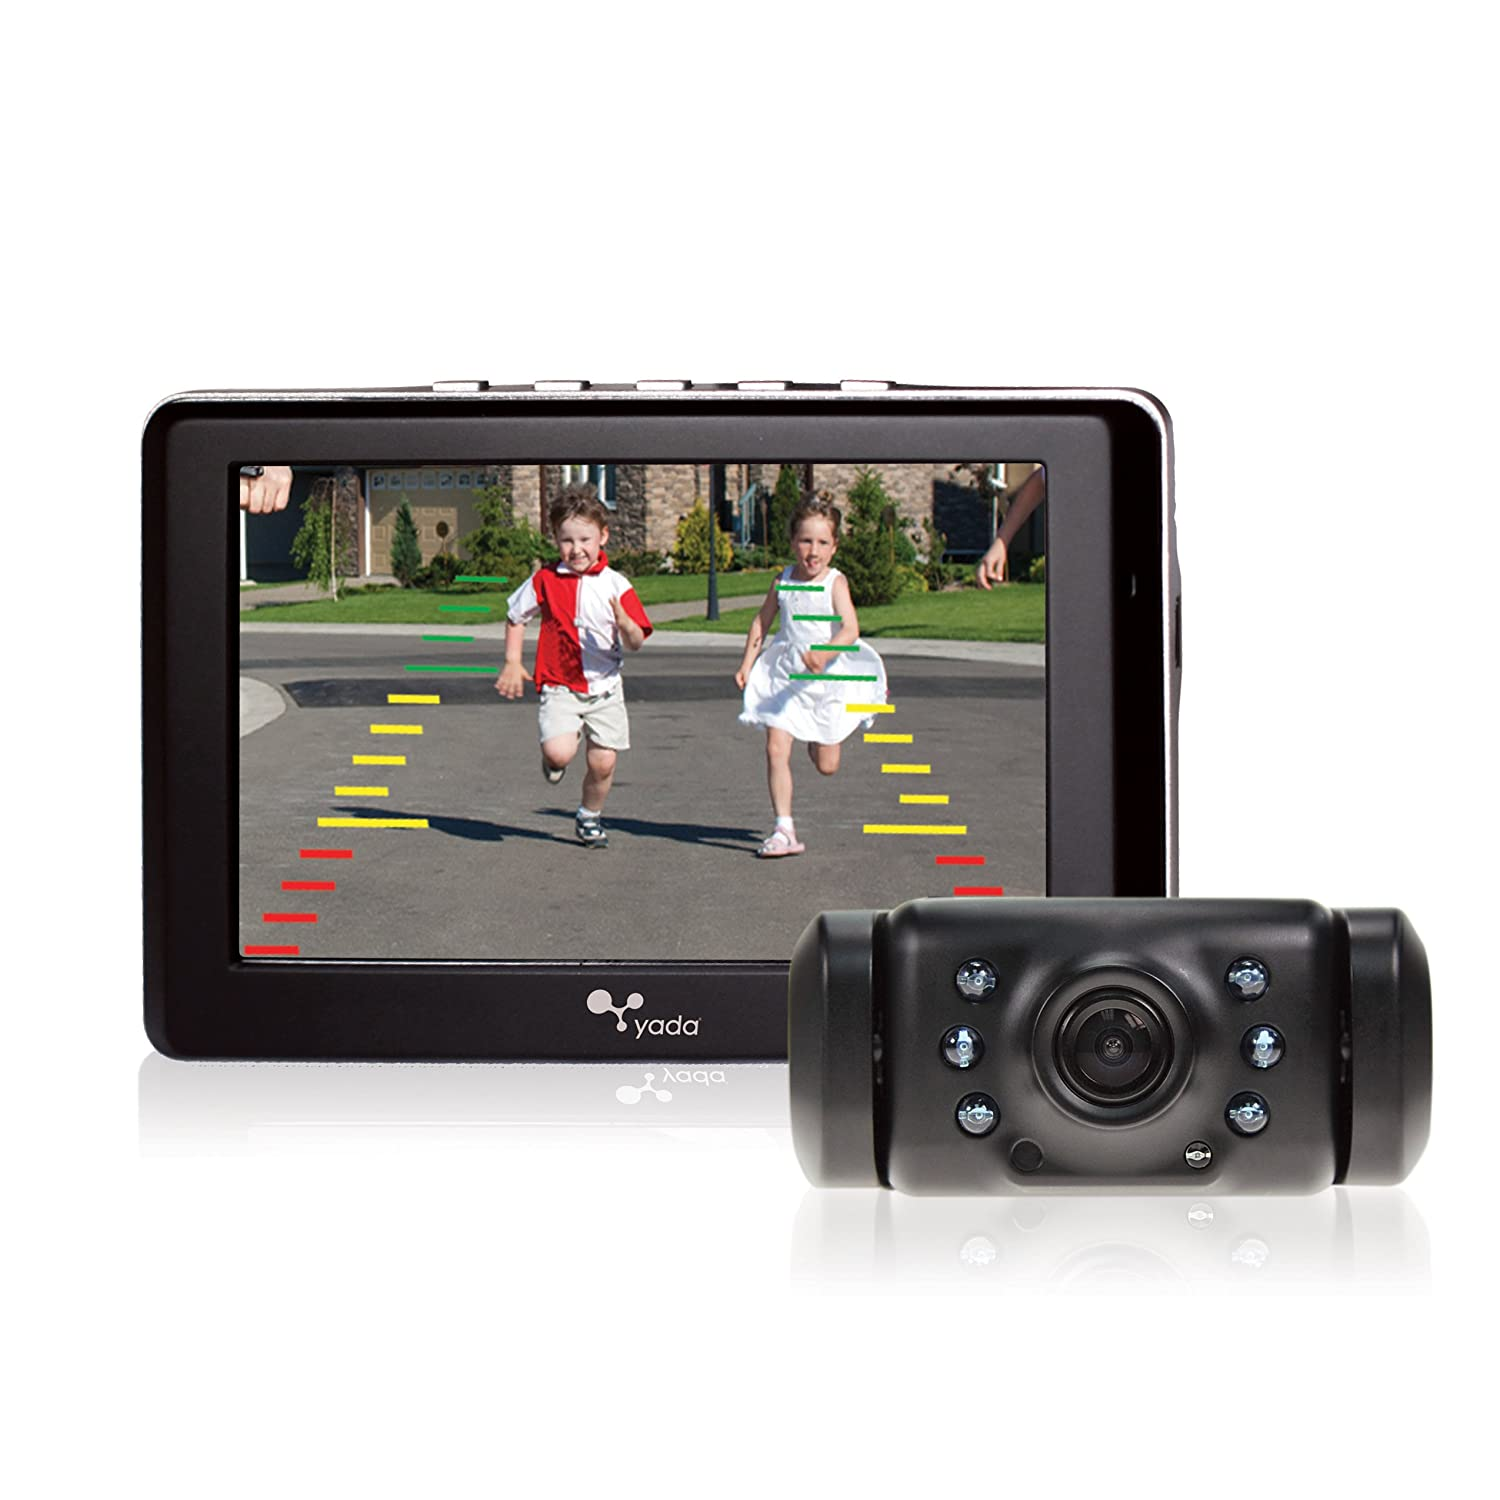 amazon com yada digital wireless backup camera with 4 3 dash rh amazon com Yada Backup Camera Review yada wireless backup camera install